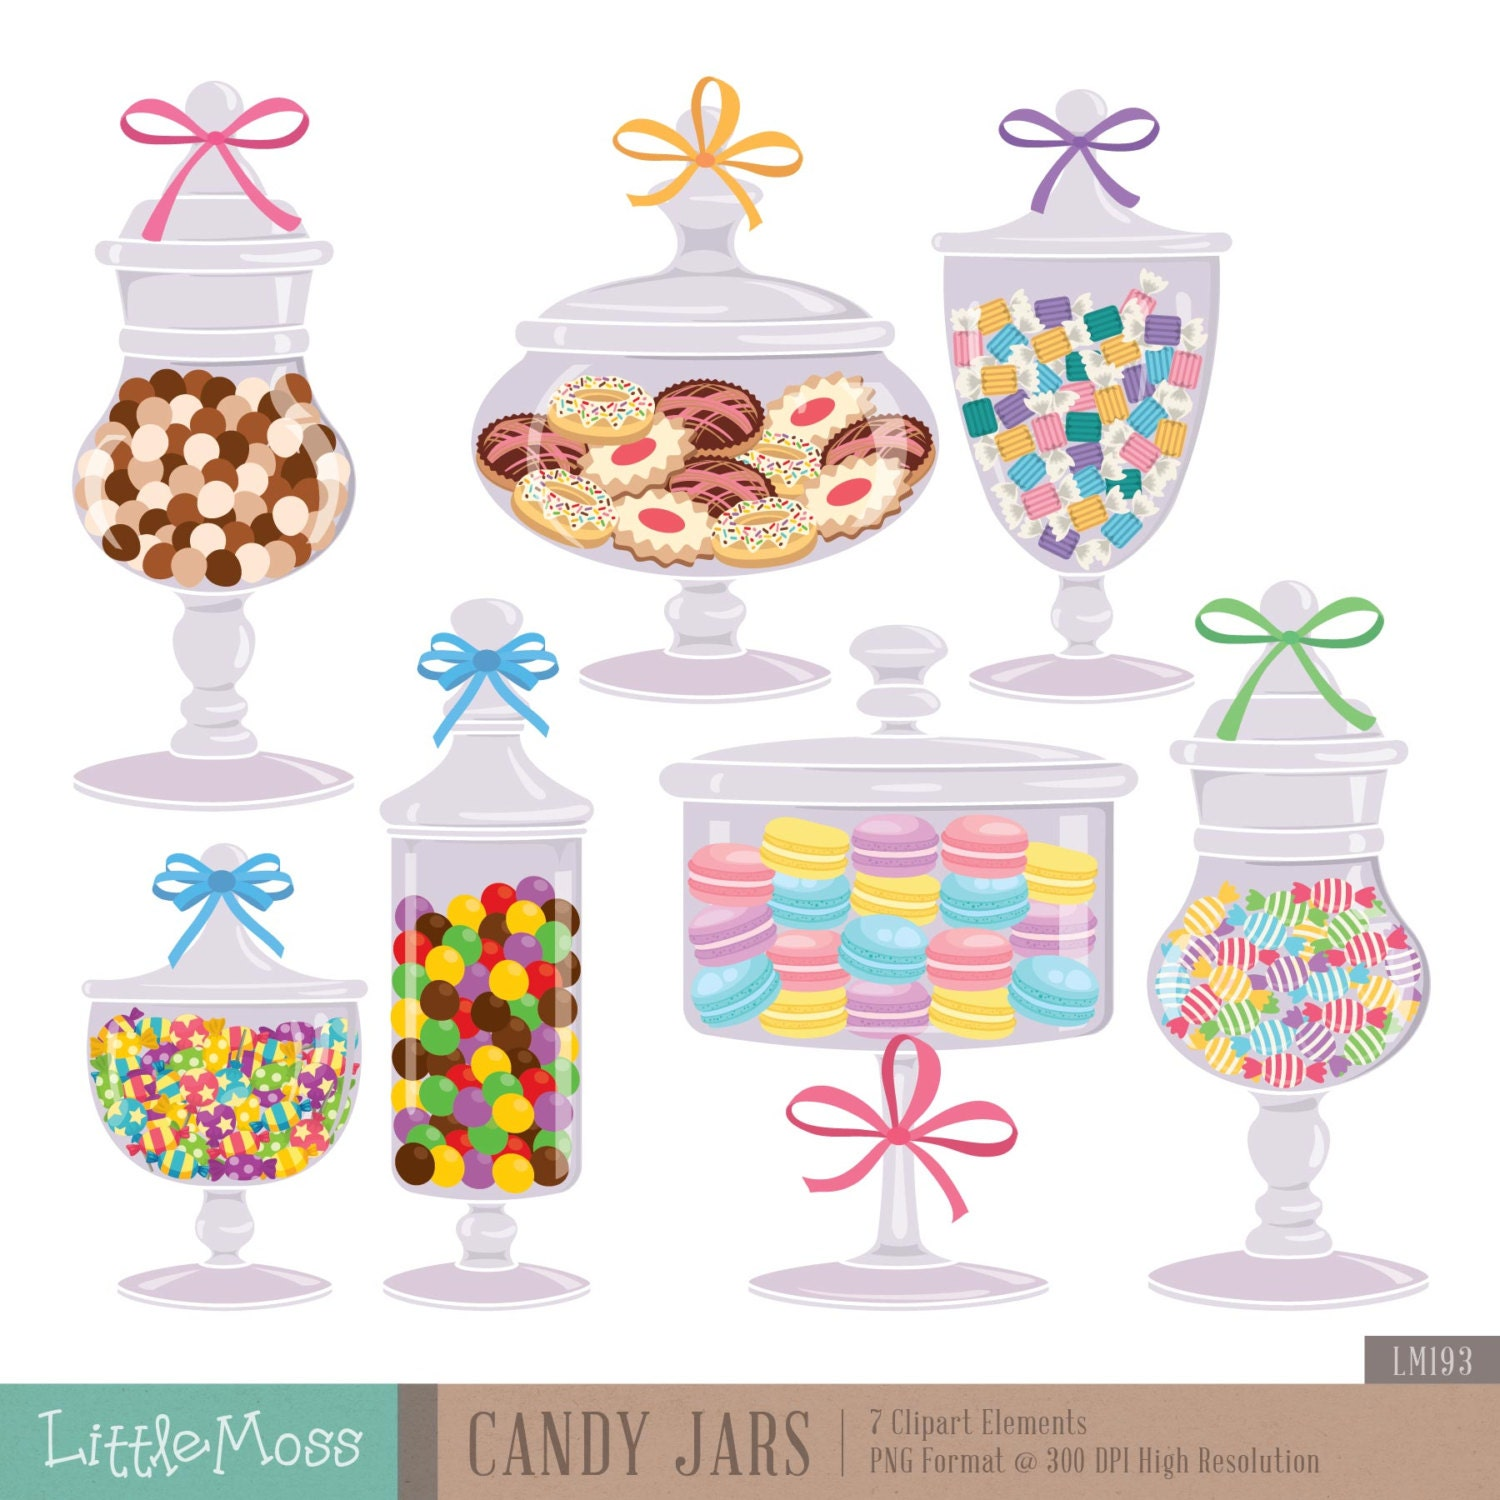 Candy jar clipart | Etsy